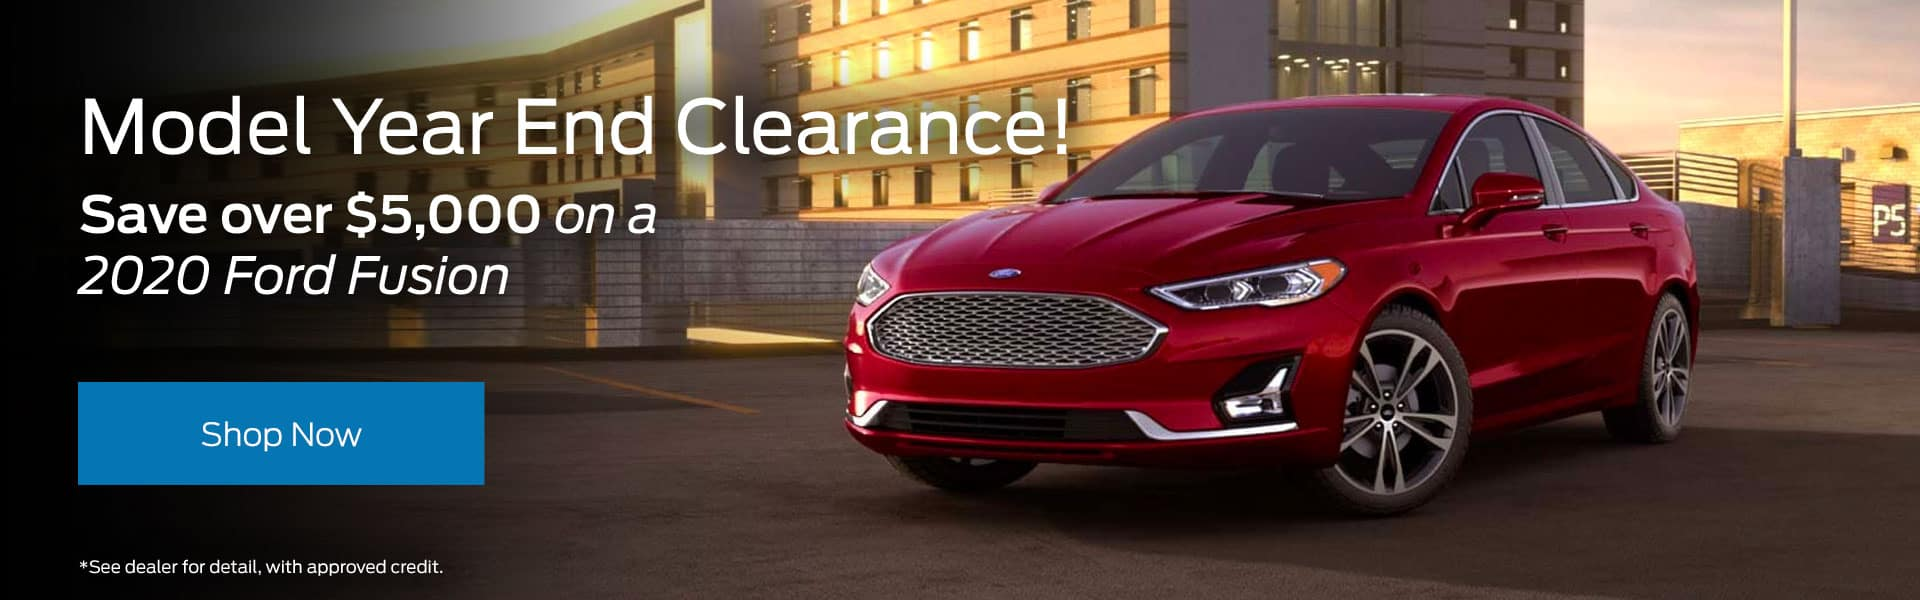 Model Year End Clearance! Subtext: Save over $5,000 on a 2020 Ford Fusion